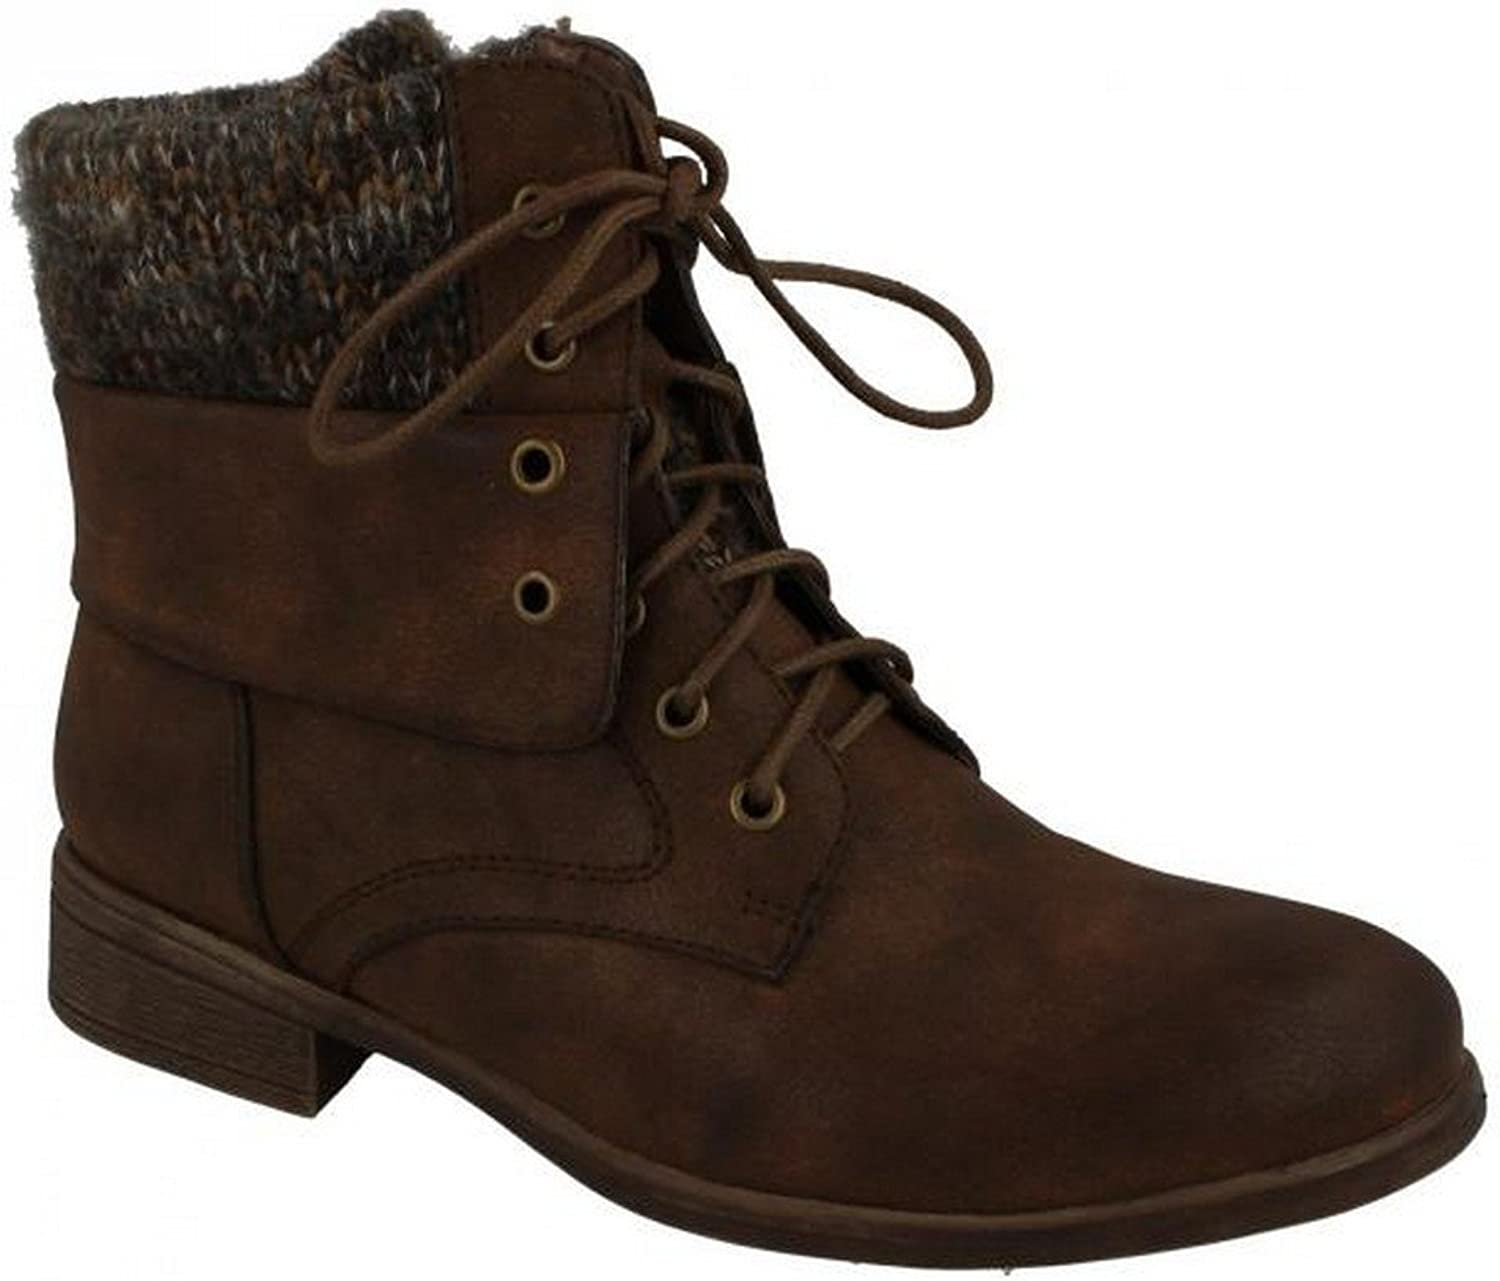 Spot On Womens Ladies Mid Heel Lace Up Ankle Boots